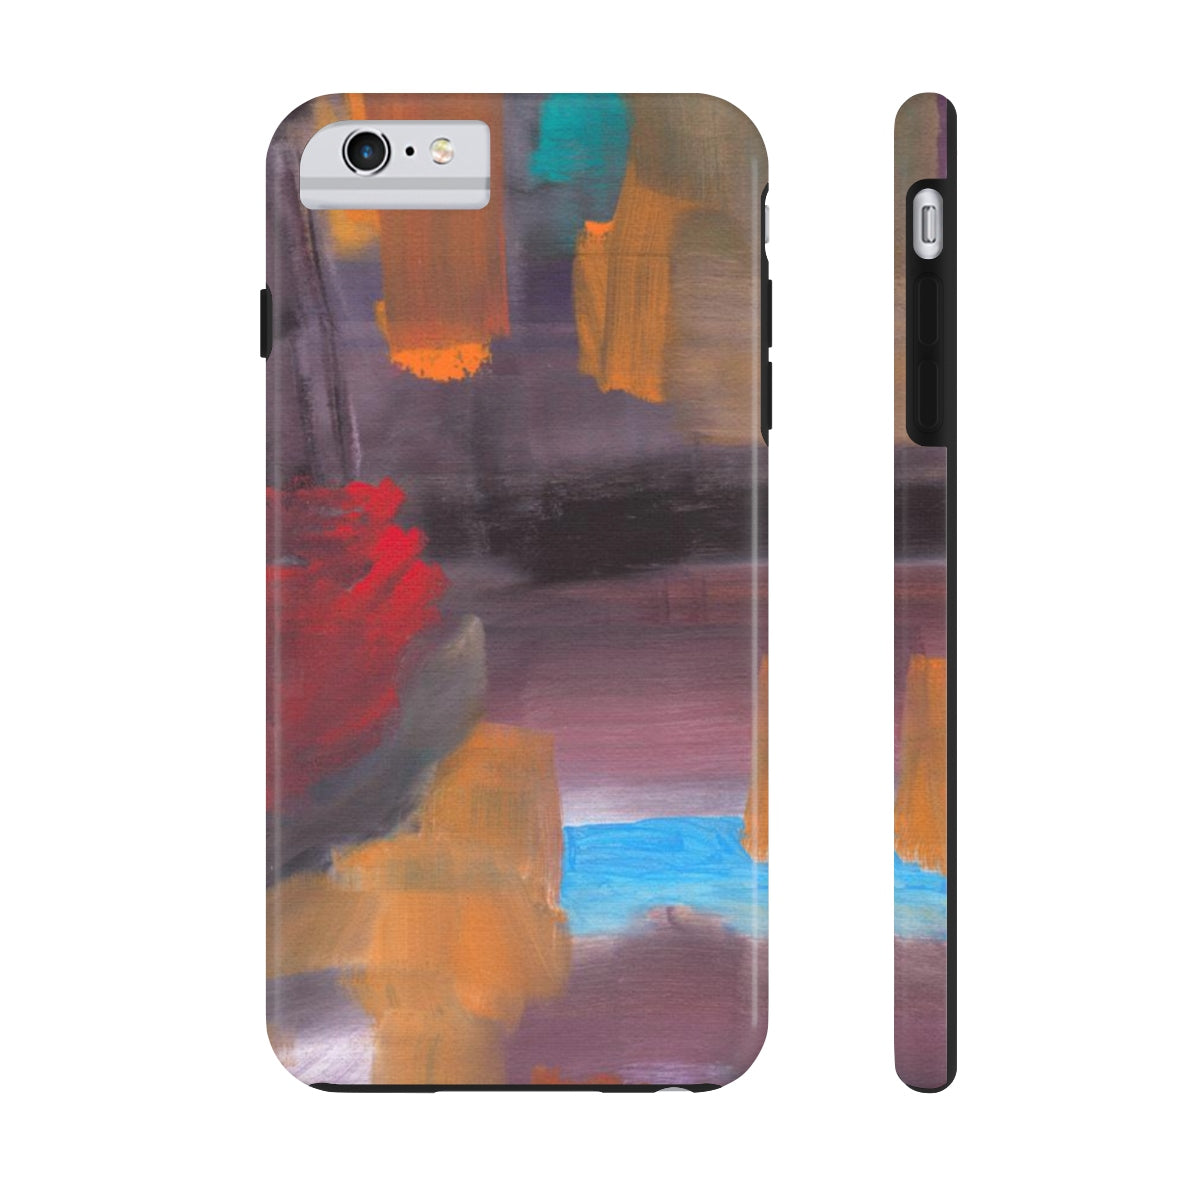 CAVE VIEW Case Mate Tough Phone Cases